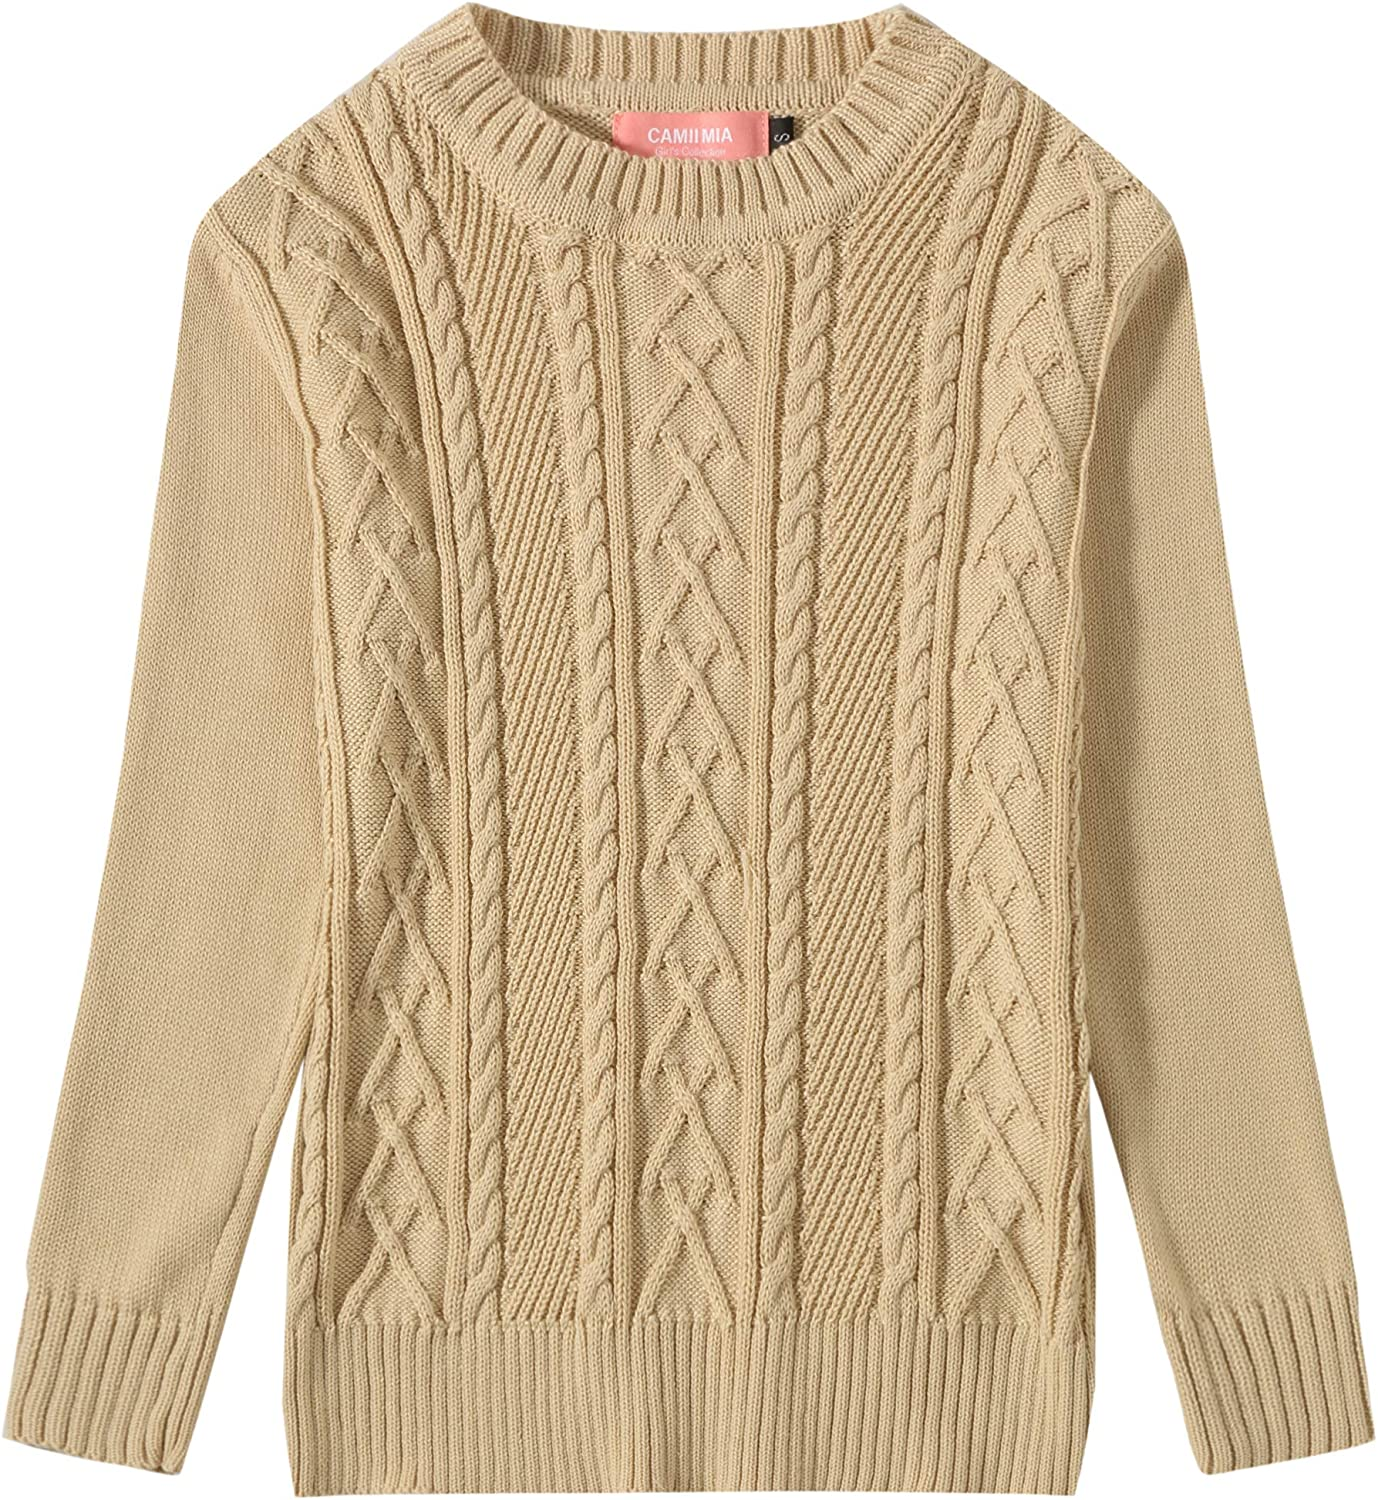 Camii Mia Big Girls Long Sleeve Pullover Knitted Crewneck Cable Sweater